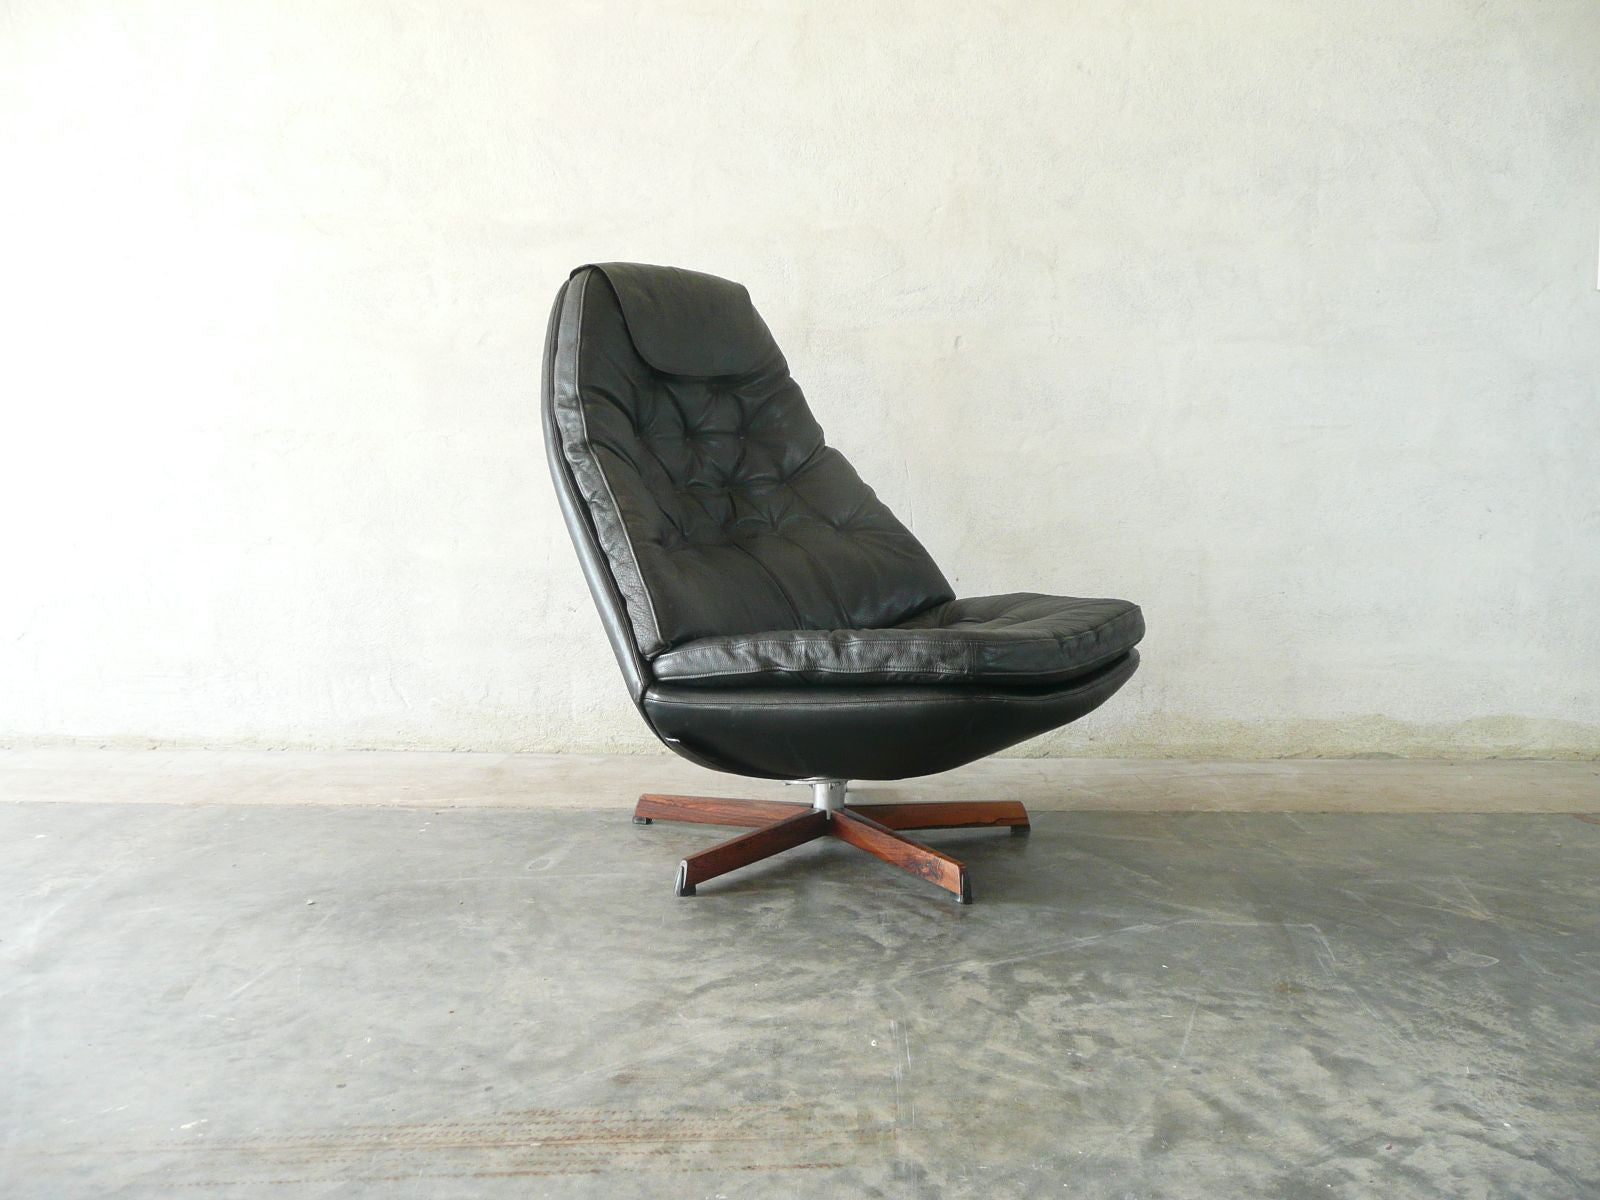 Reclining lounge chair by Madsen & Schubell